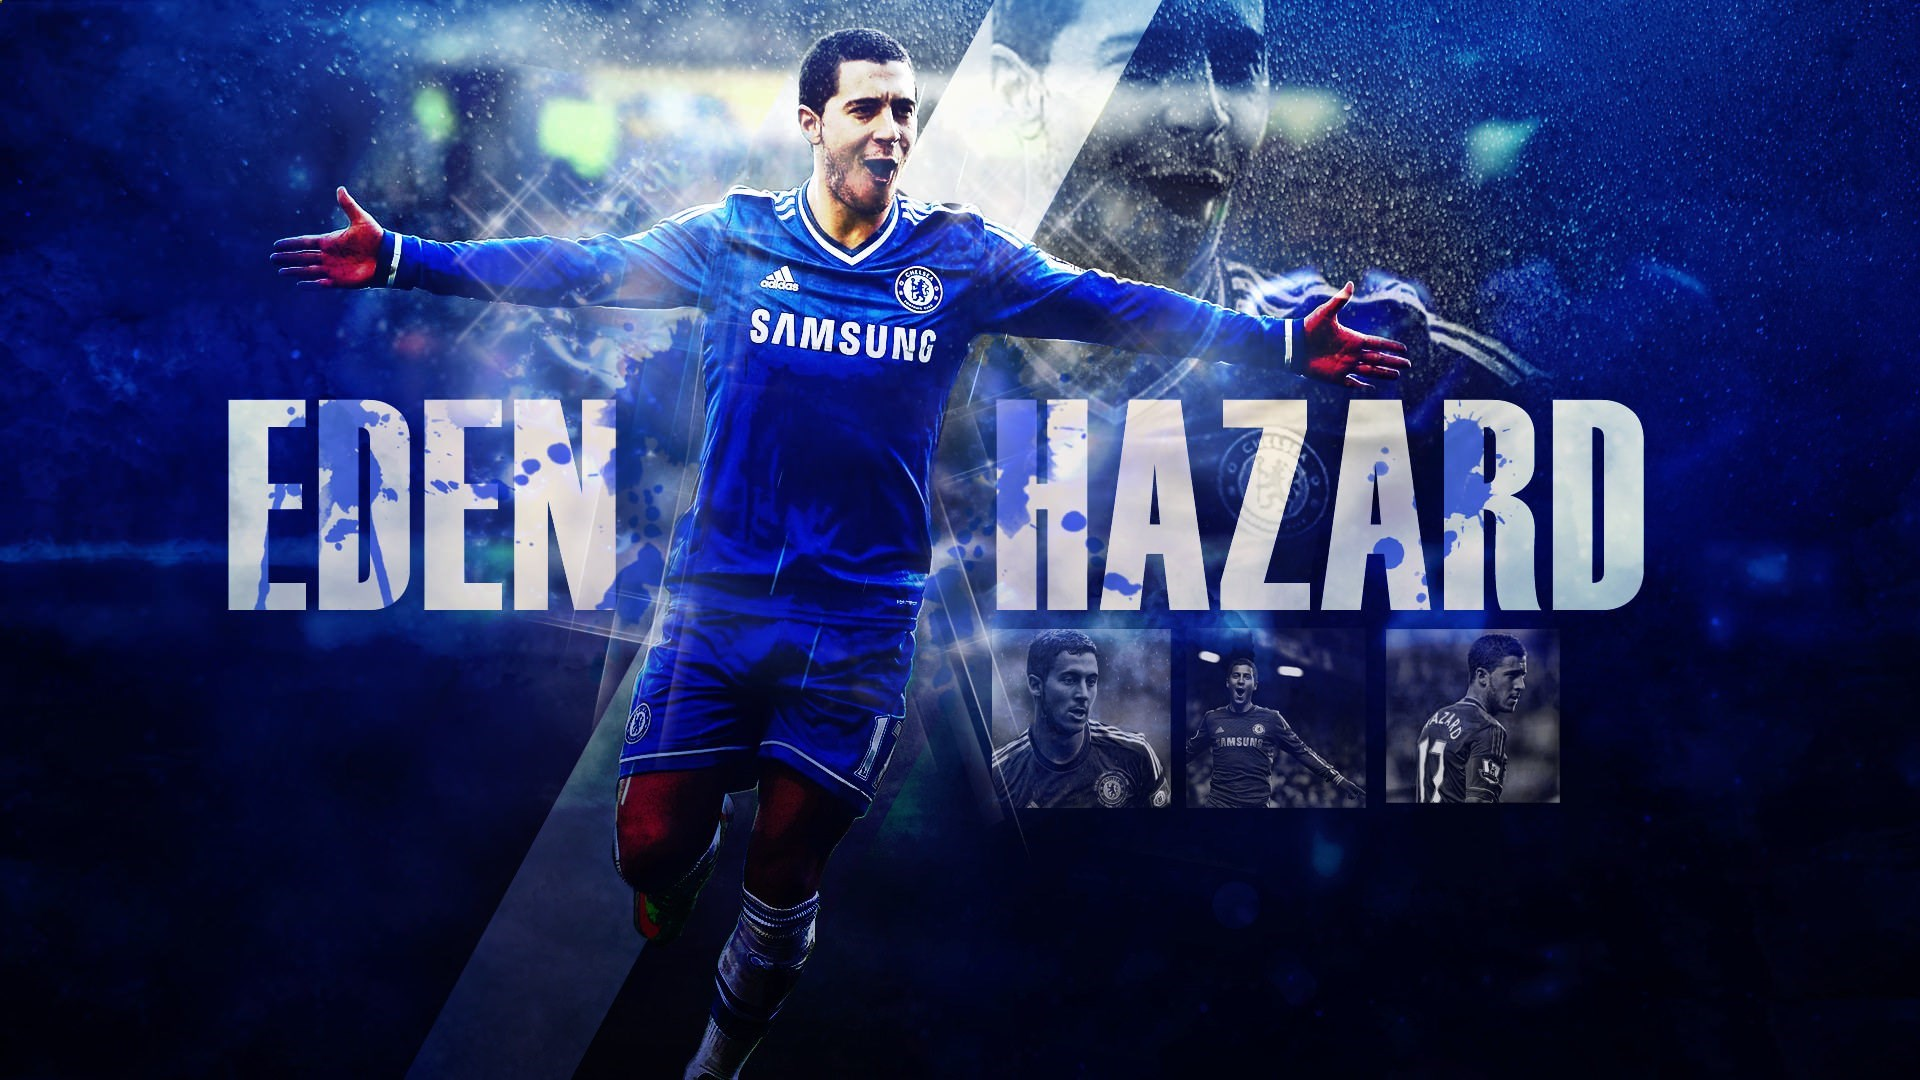 Eden-Michael-Hazard-is-a-Belgian-professional-footballer-who-plays-for-Chelsea-and-the-Belgium-natio-wallpaper-wpc9004635